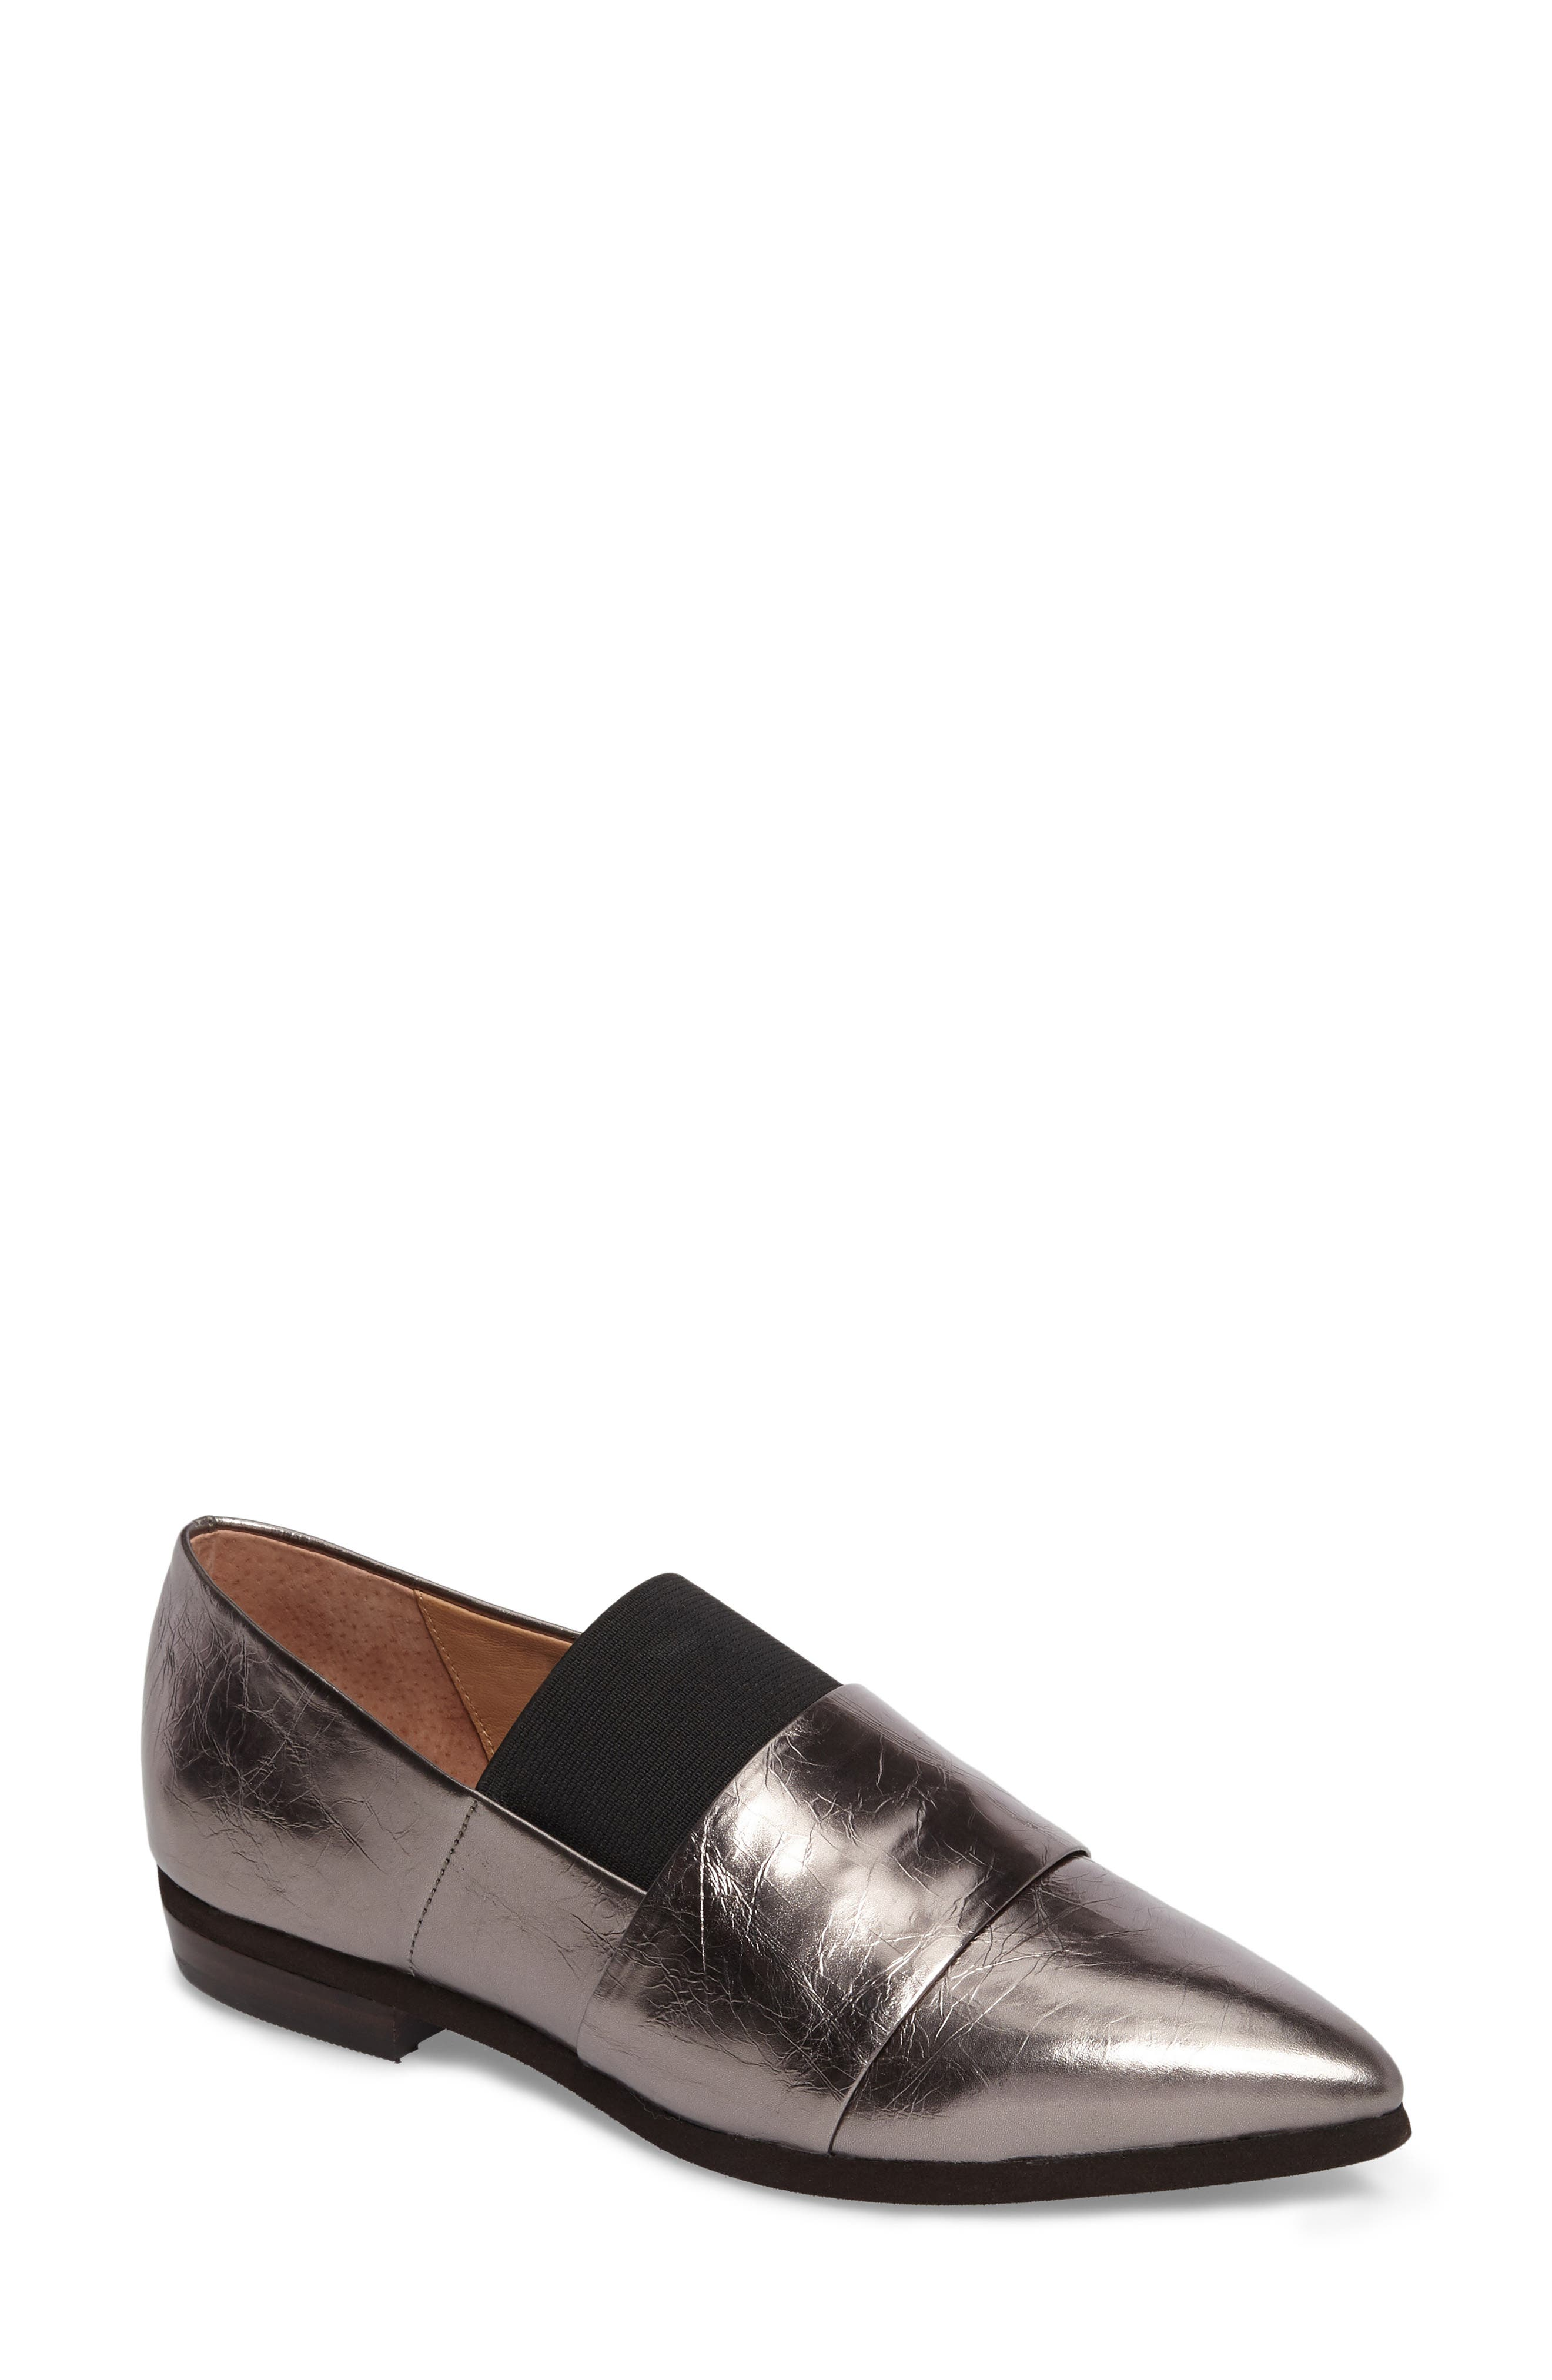 Main Image - Linea Paolo Mason Loafer (Women)